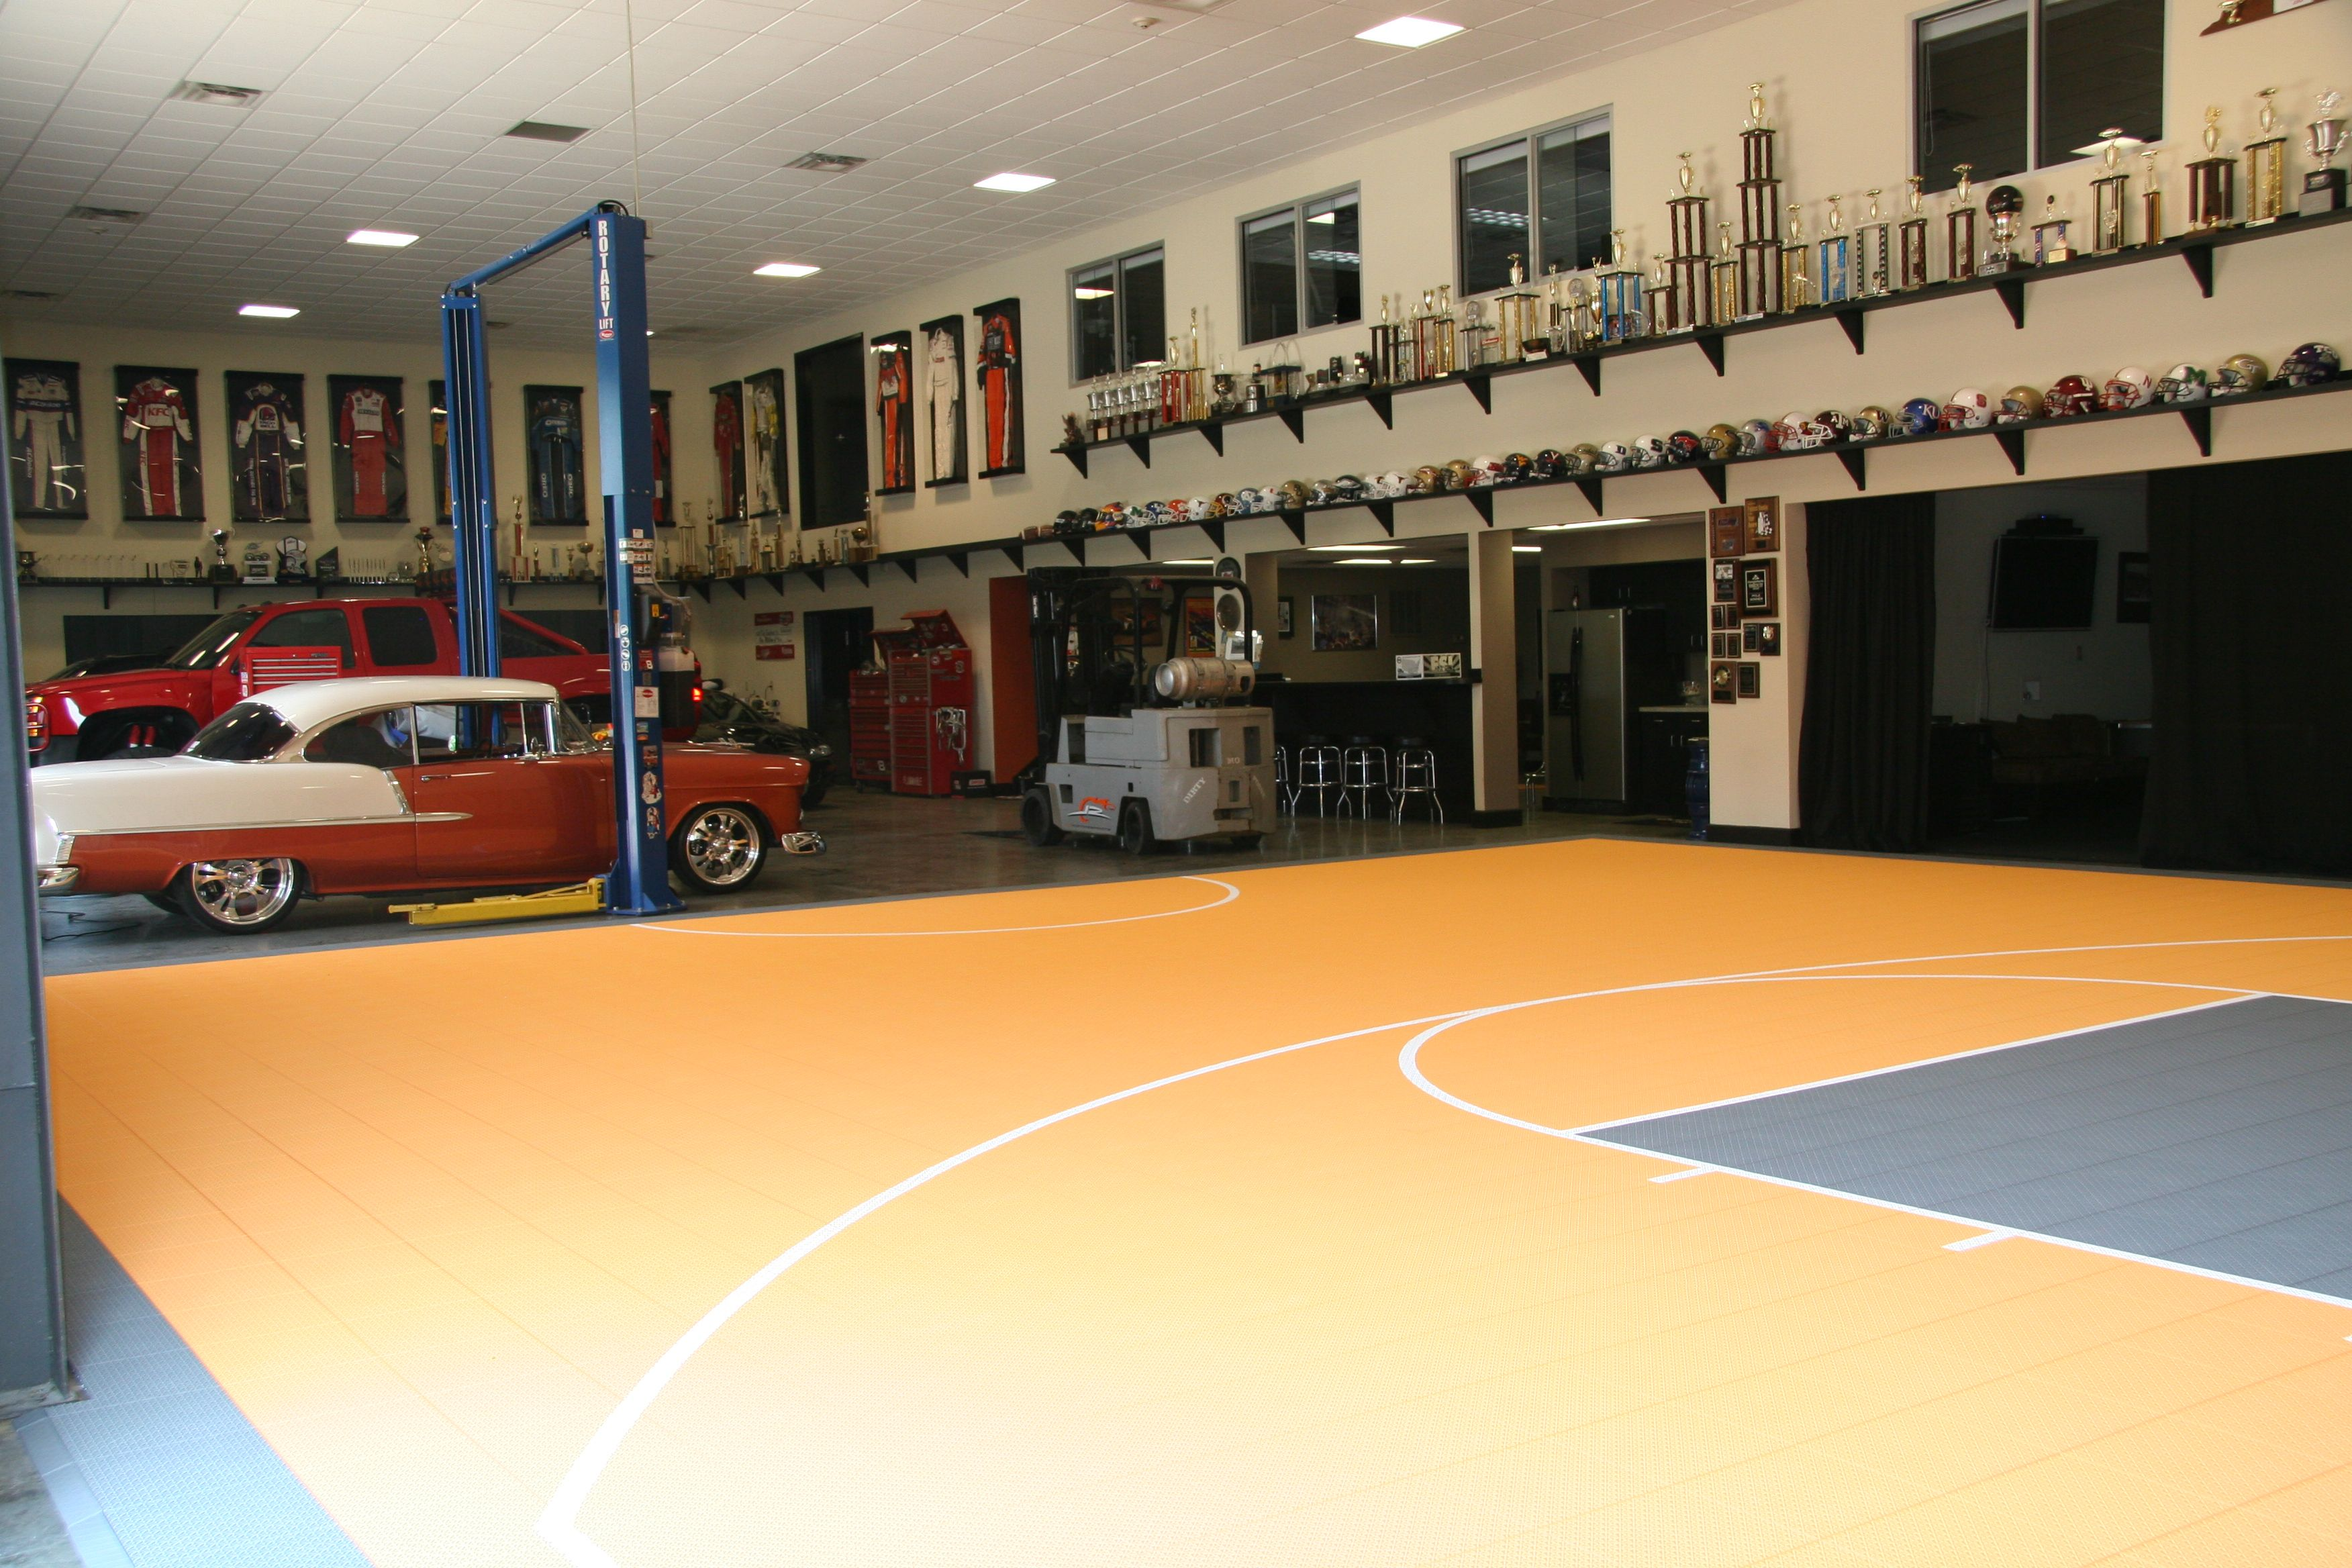 Indoor Basketball Court In A Large Warehouse Type Garage